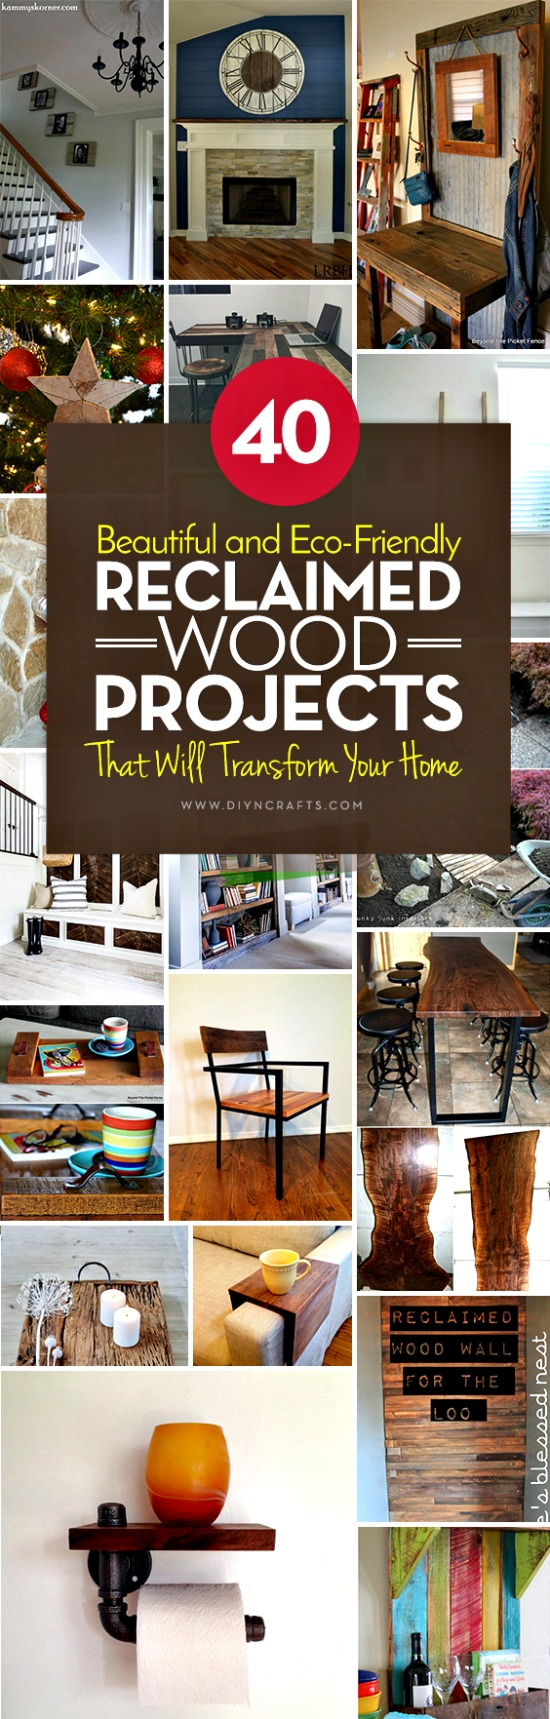 Looking for the perfect DIY project to transform your home this summer? One of the biggest trends in home décor right now is upcycling reclaimed wood. You can search for wood and reclaim it yourself from abandoned local structures (barns, railroads, etc.), or you can purchase it wholesale. Pallets are a great source if you are just starting out—just keep an eye on the roadside on your next long drive and you are bound to find some just lying around.